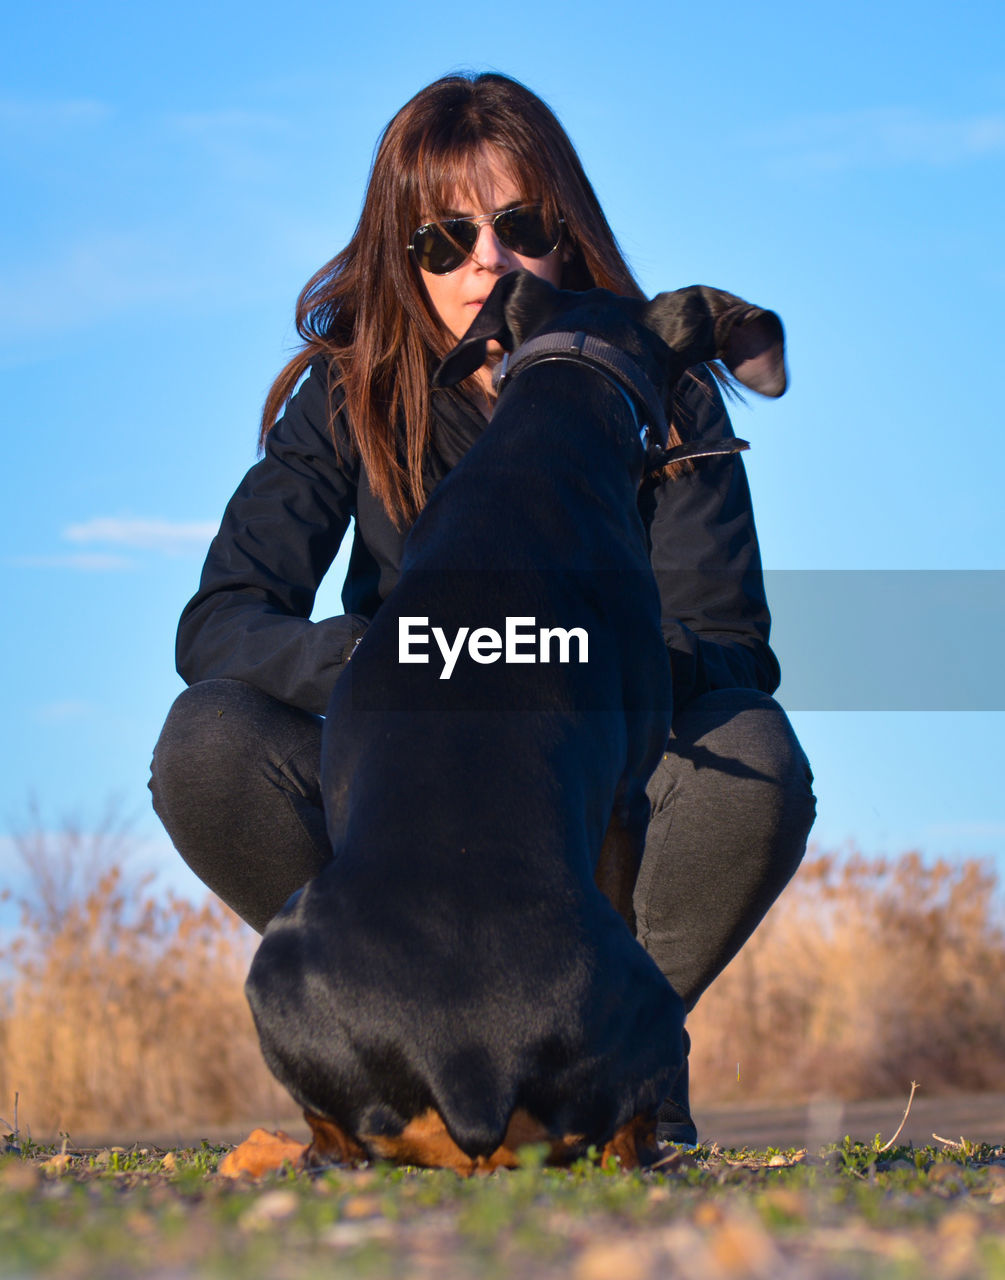 LOW ANGLE VIEW OF YOUNG WOMAN ON SUNGLASSES AGAINST SKY